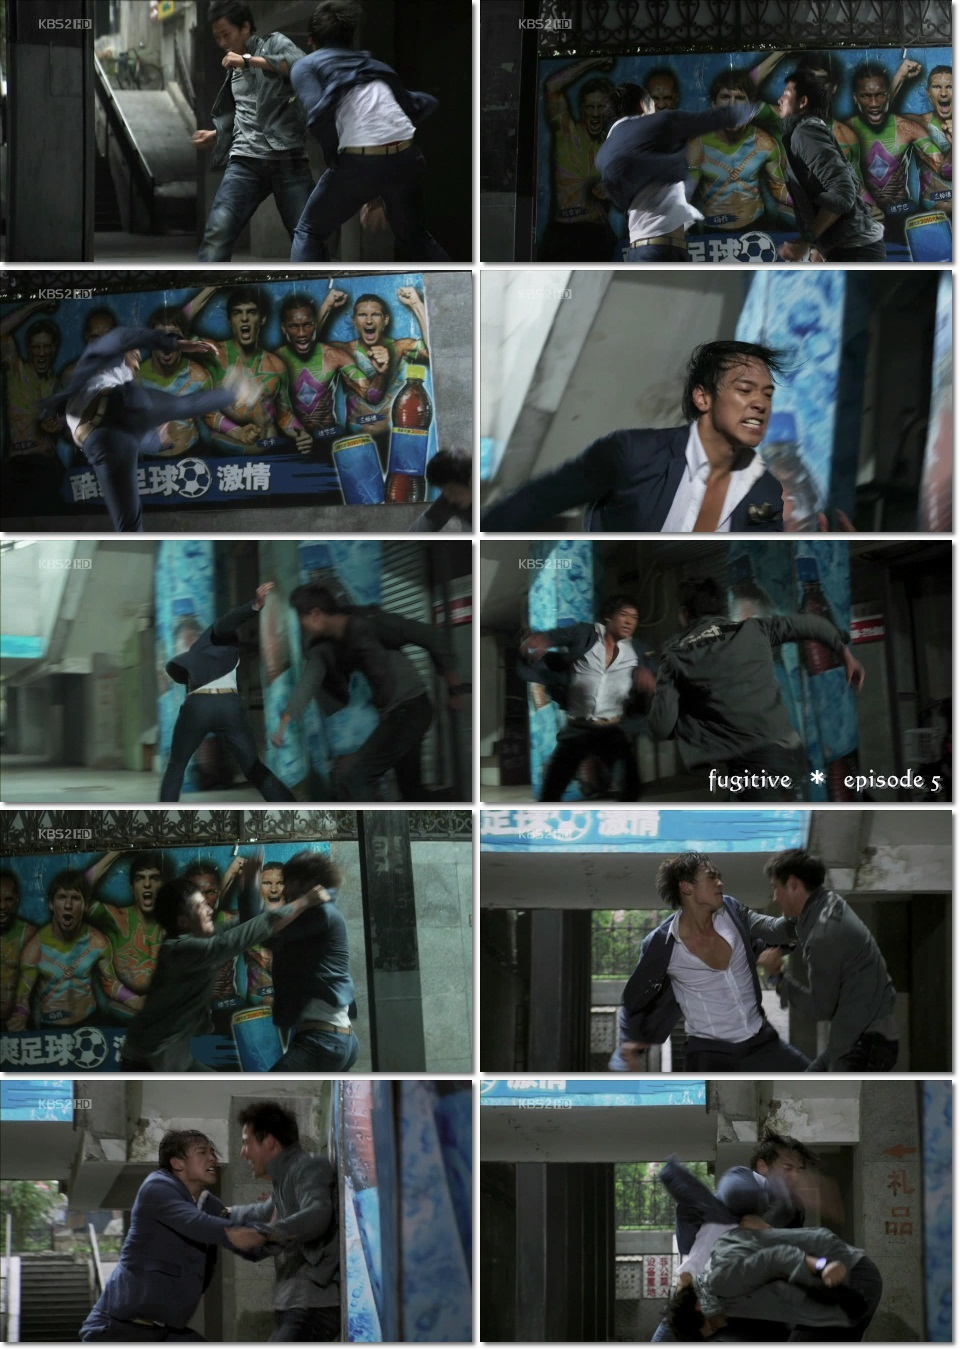 101013-Fugitive Plan B Ep5-046